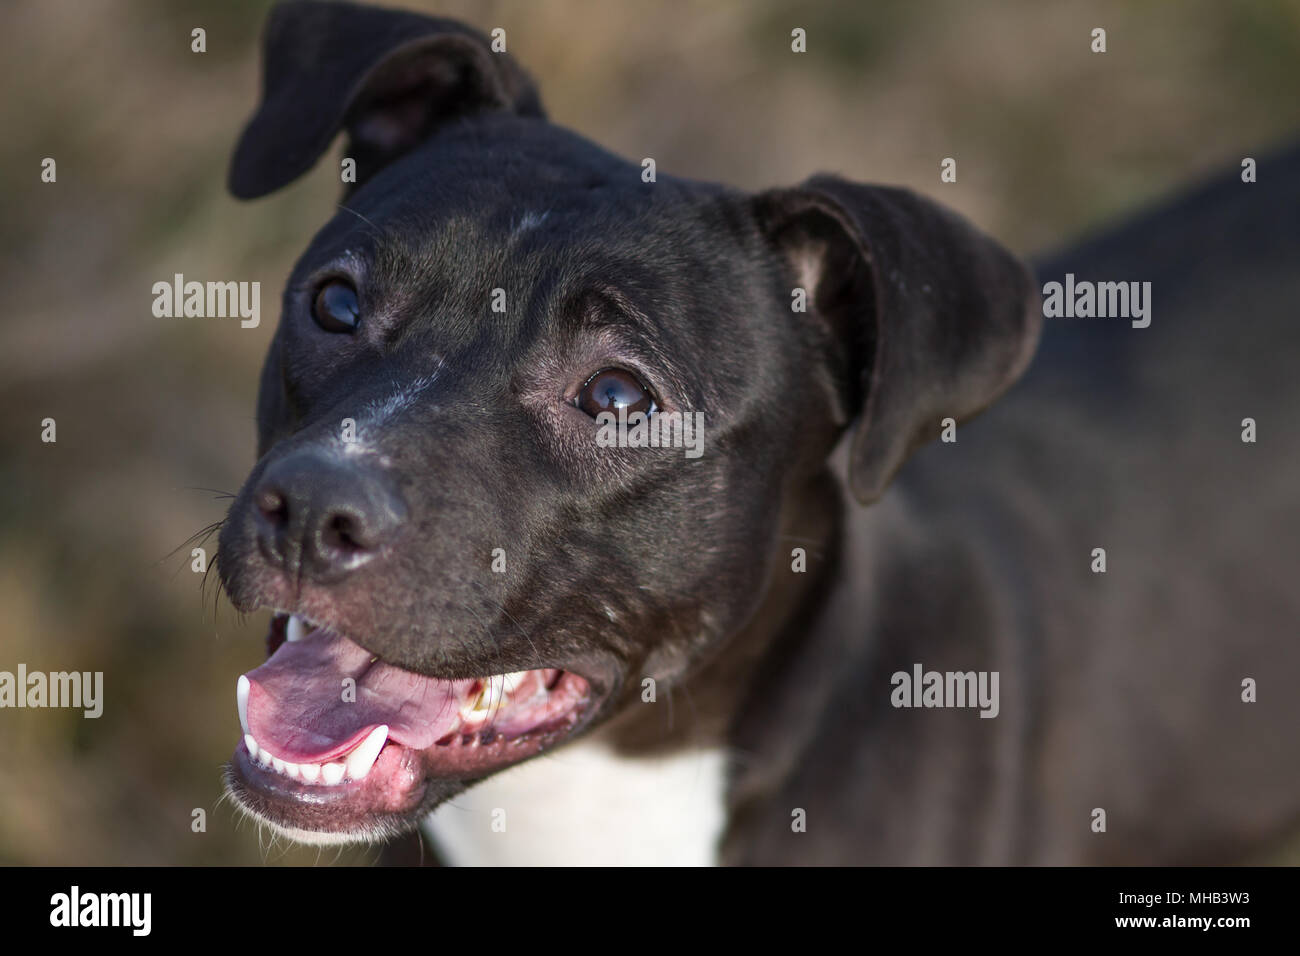 Adorable black young Pit Bull dog looking up - Stock Image